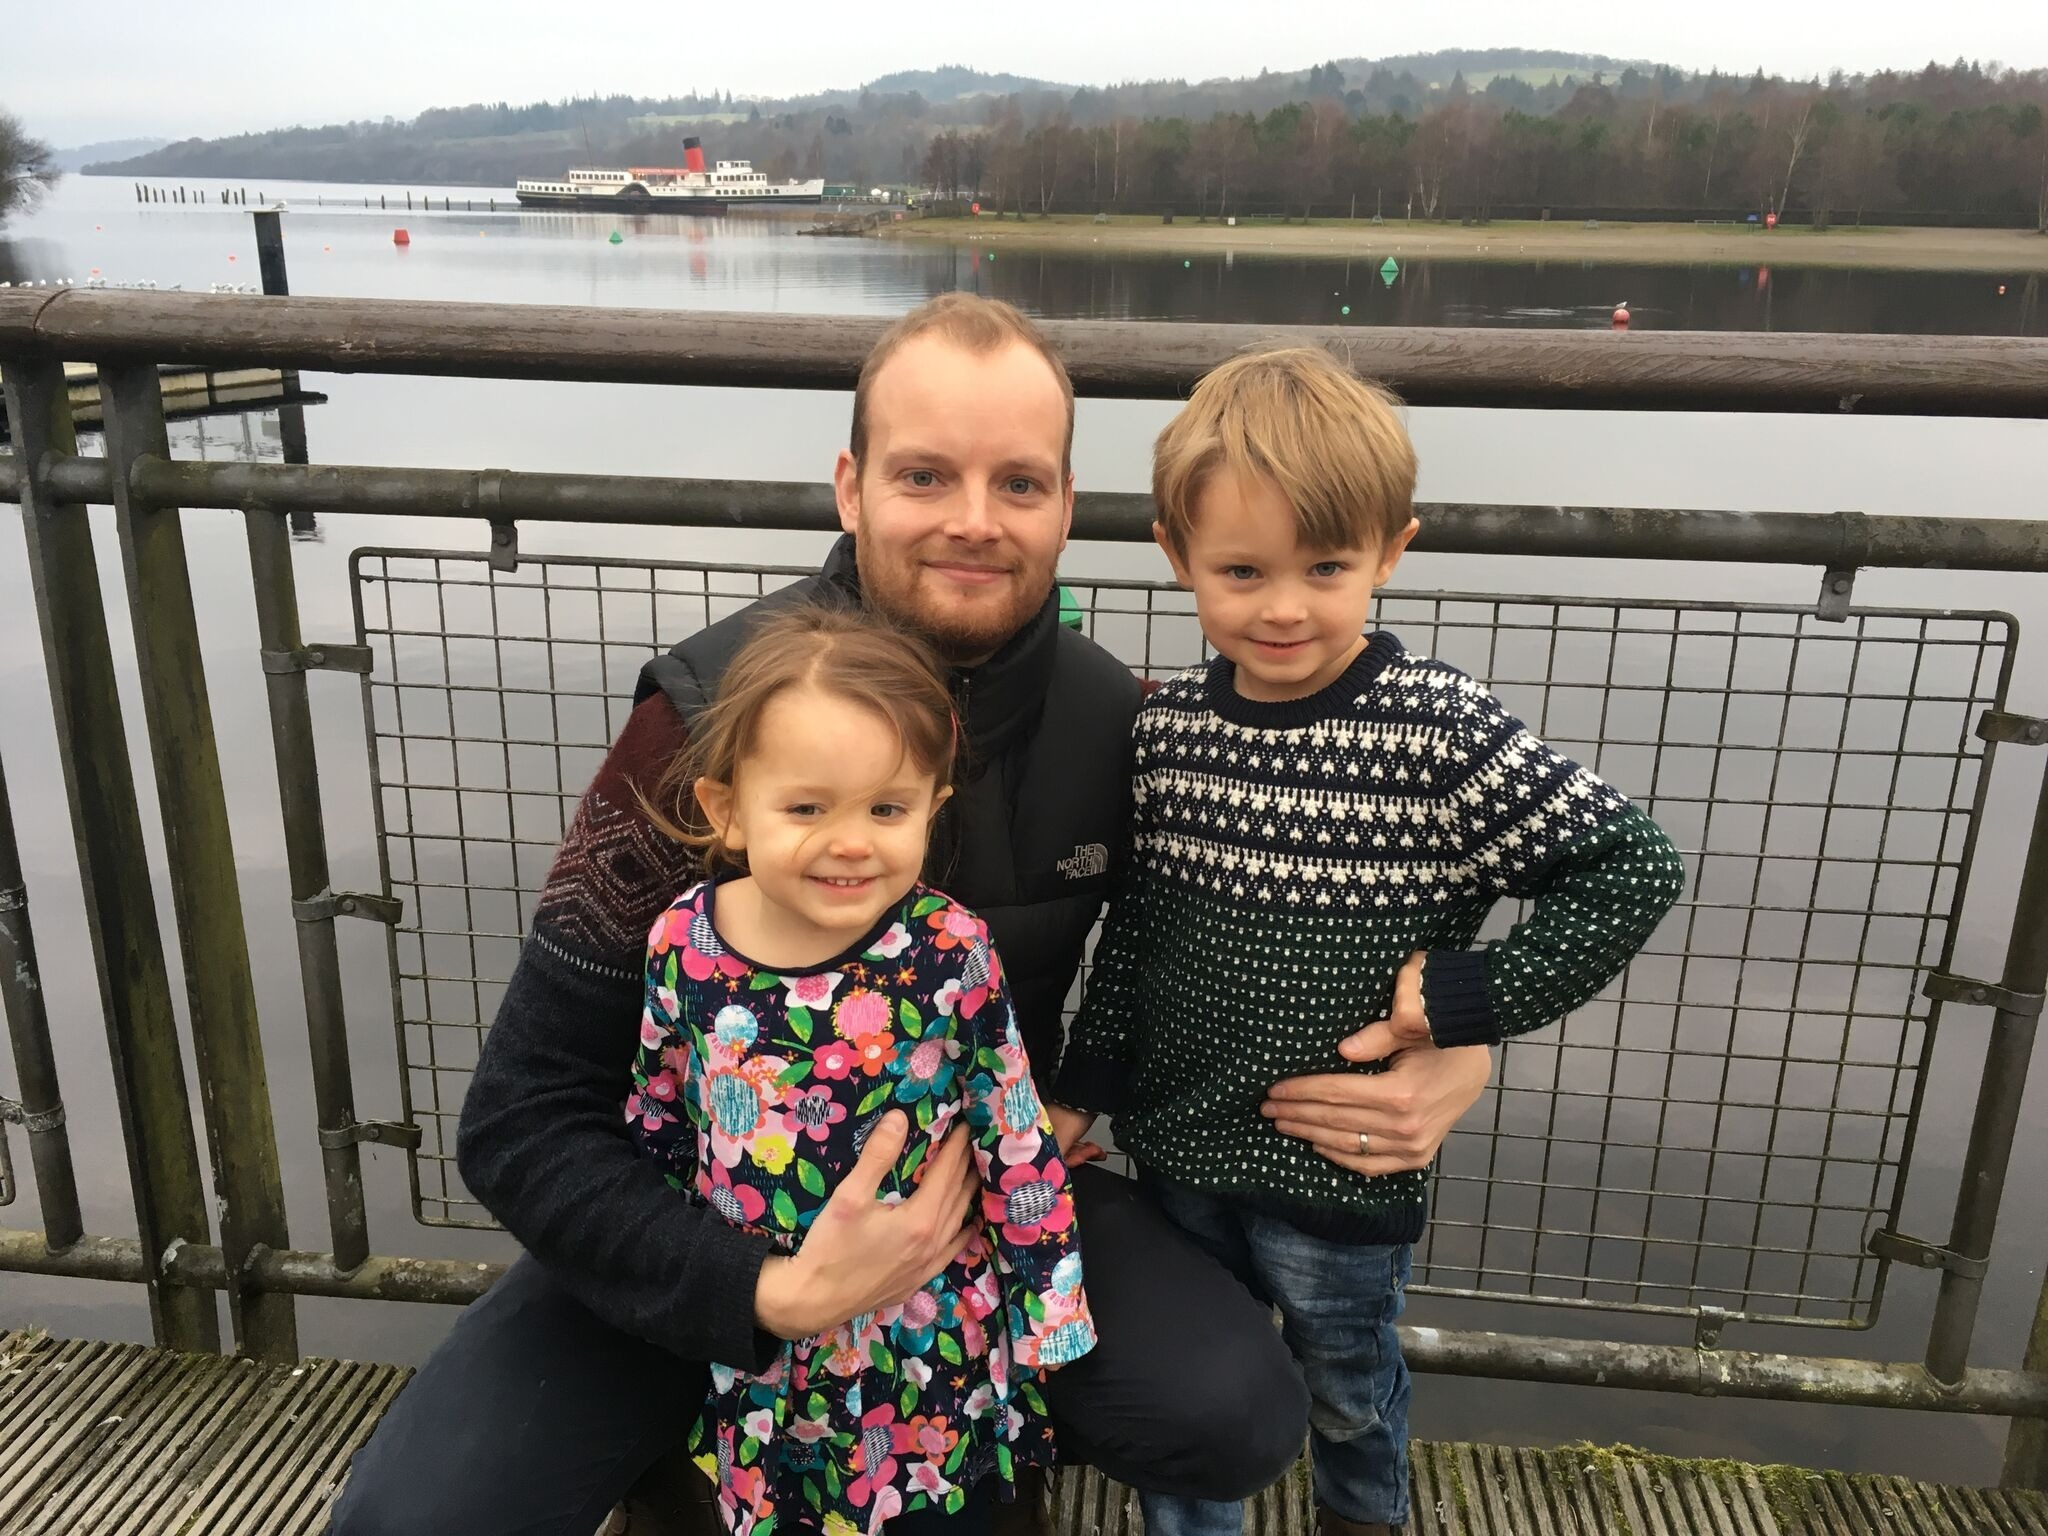 David Brand, centre, is shown with his two children, Isabel and Callum, at Loch Lomond, near their home in Scotland. (Submitted by David Brand)